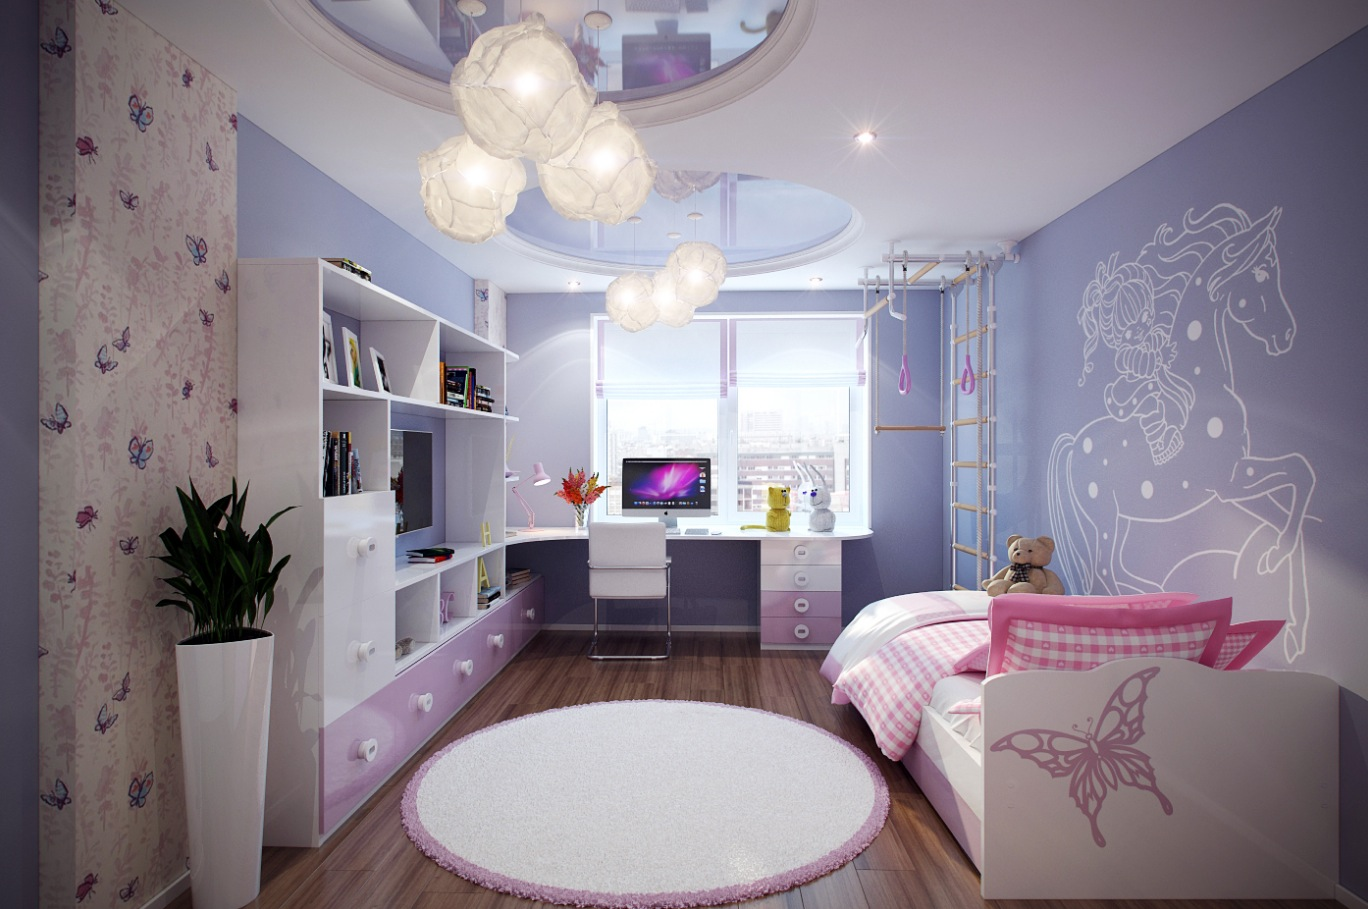 Casting color over kids rooms for Beautiful room designs images